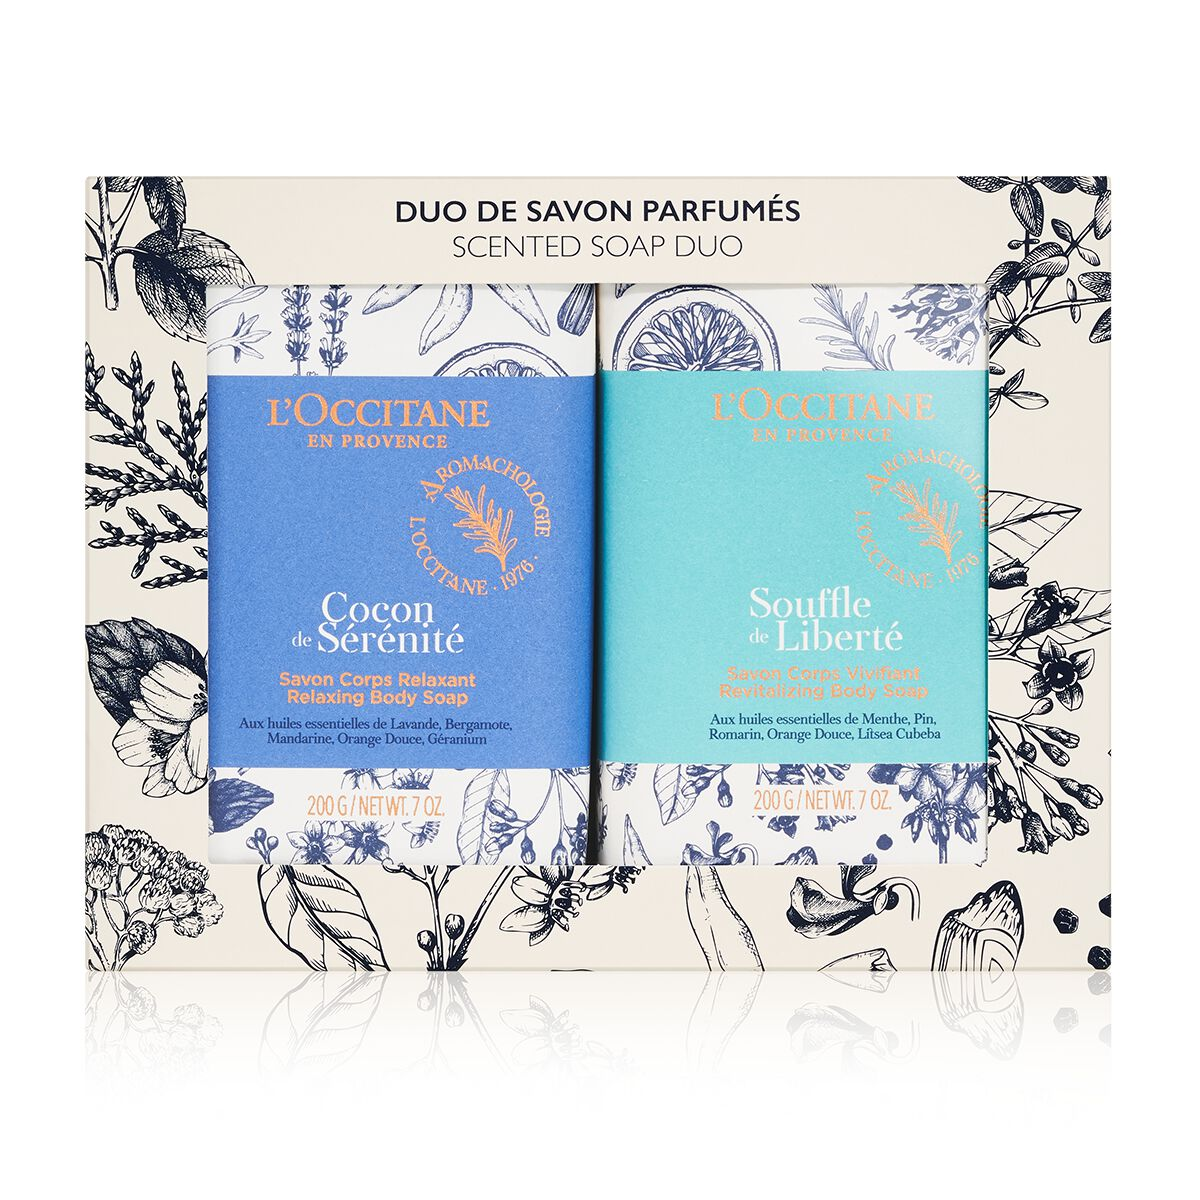 Scented Soap Duo